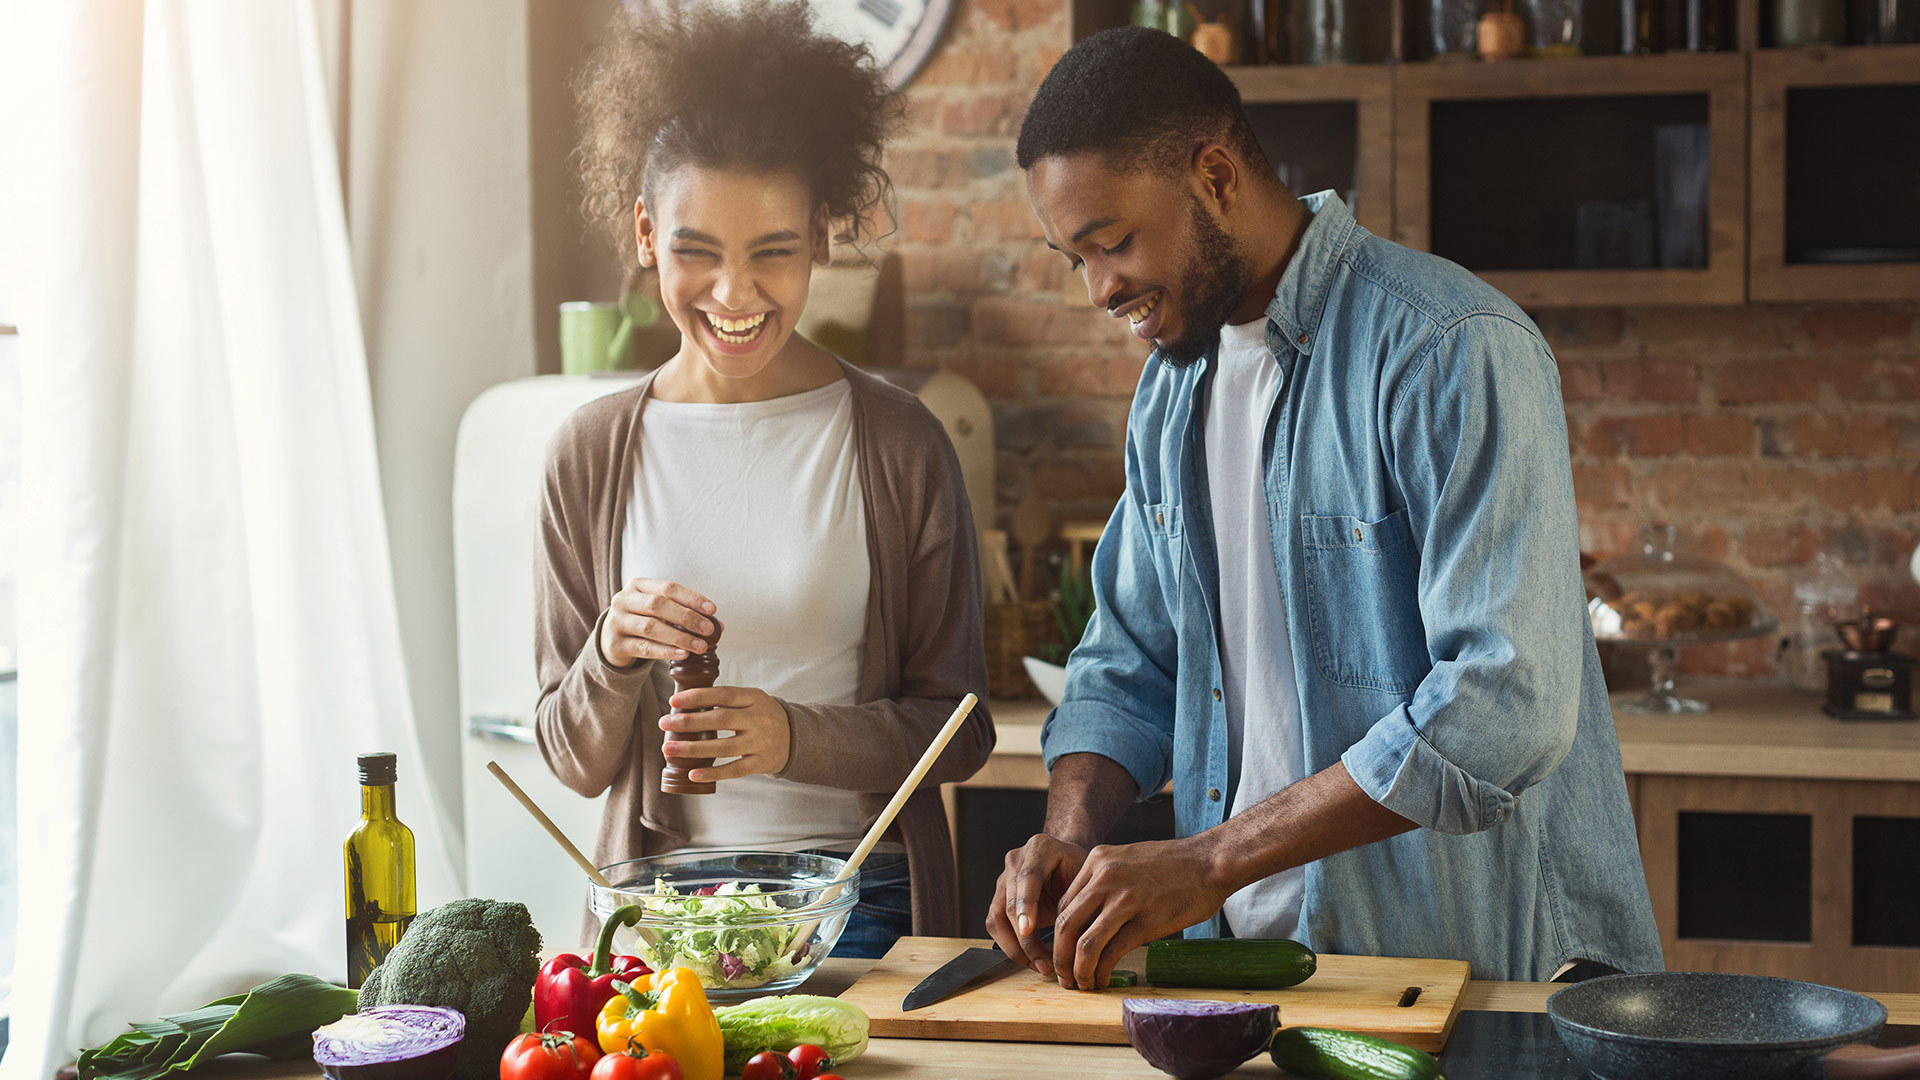 Getting a full meal delivered right to your doorstep sure sounds good. But can a meal delivery service also pay off nutritionally?